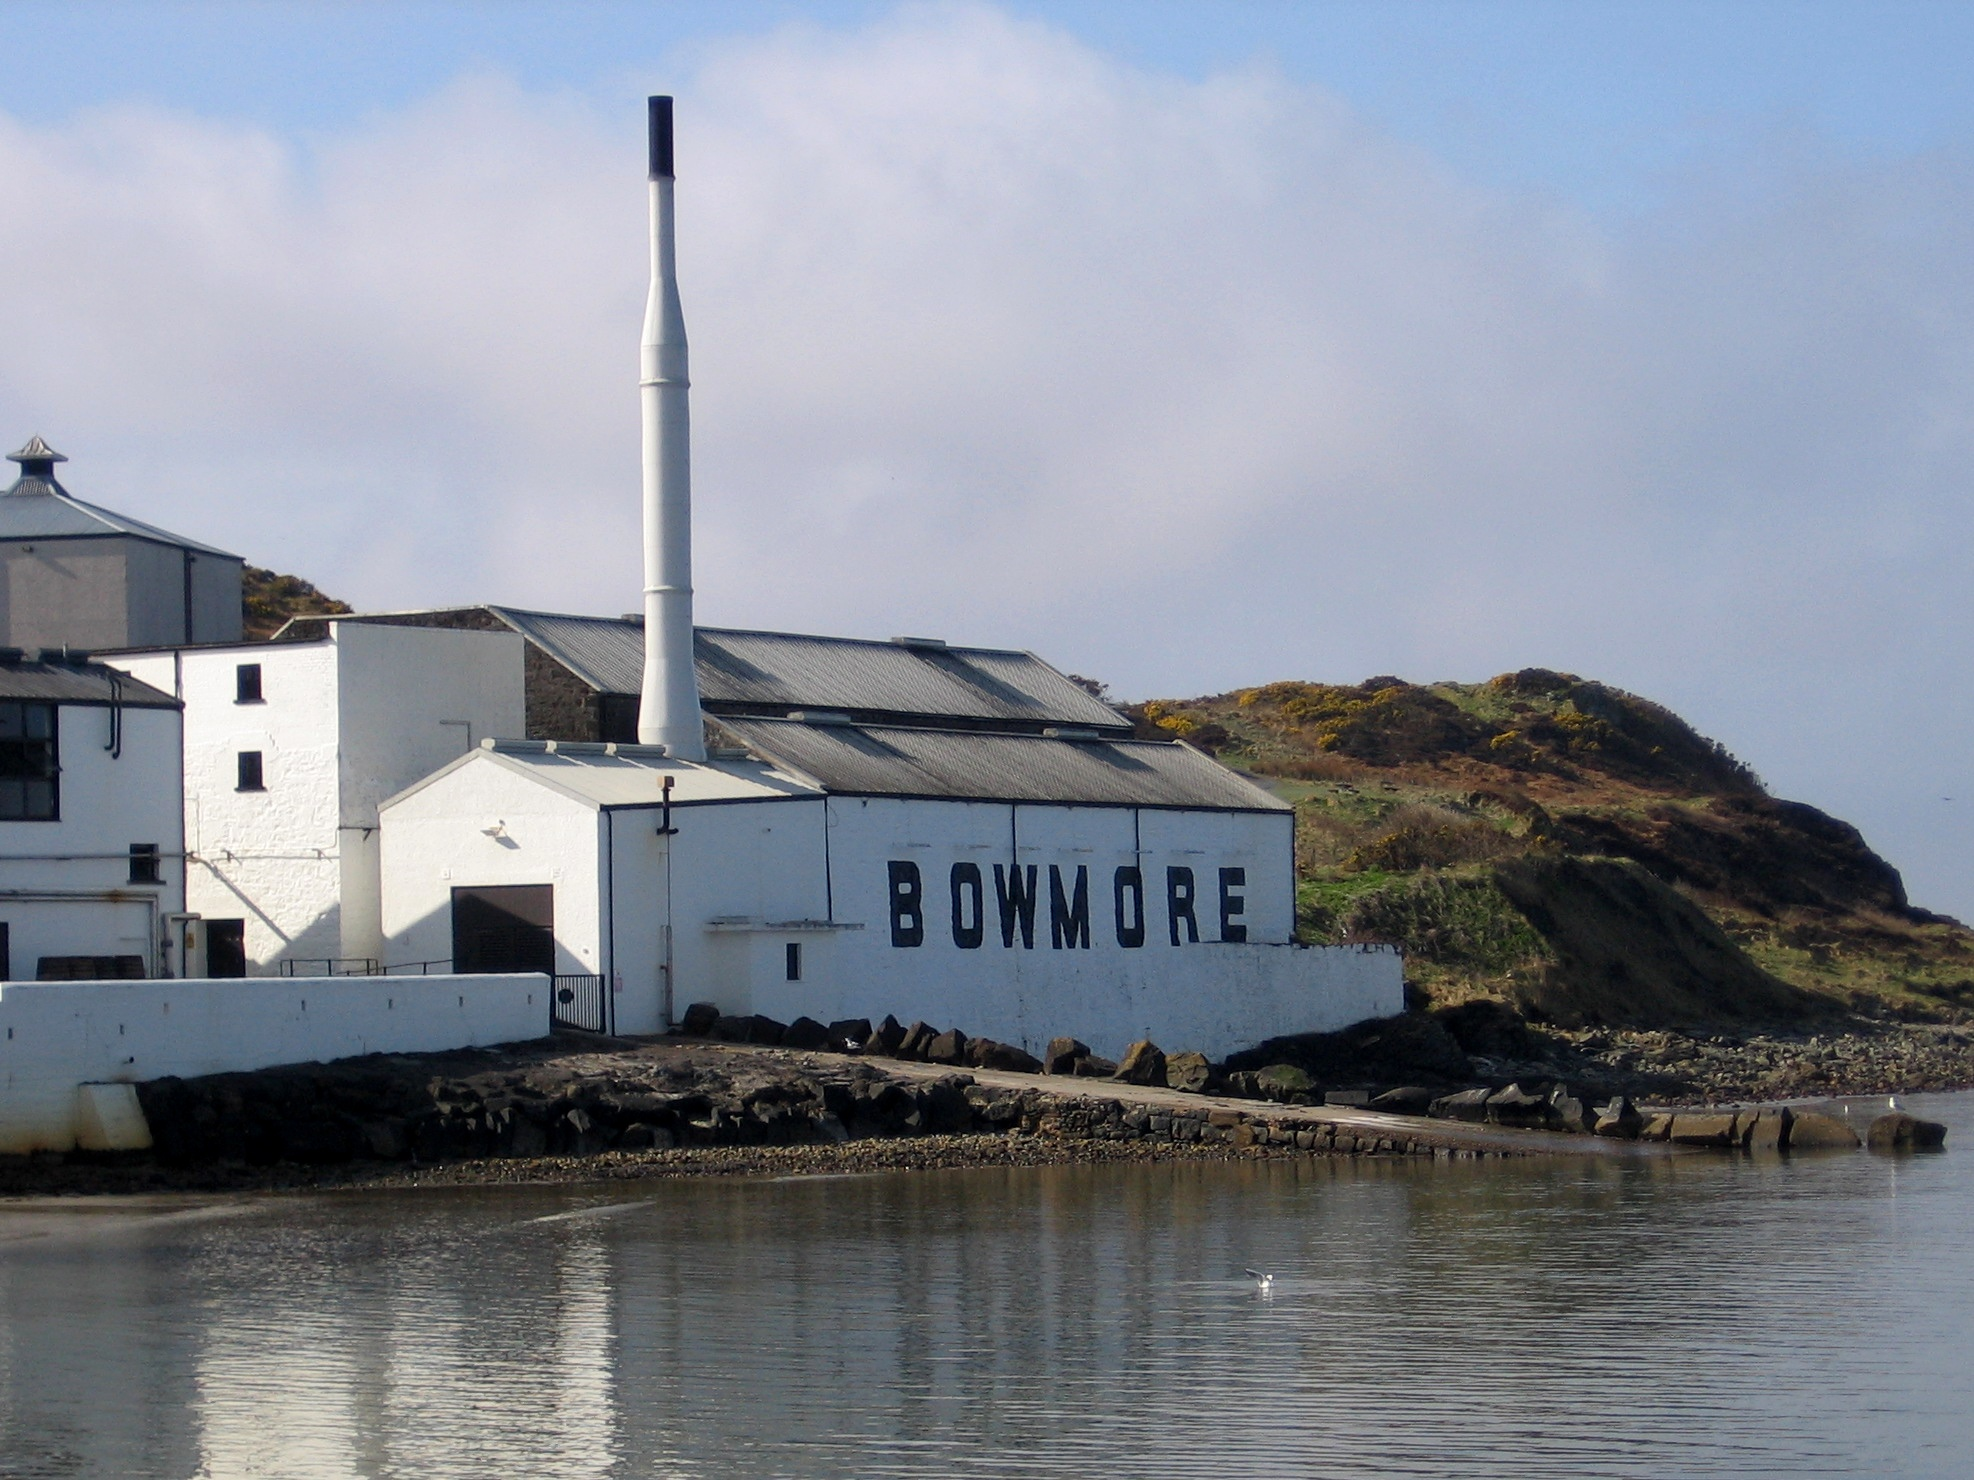 Bowmore distillery outside